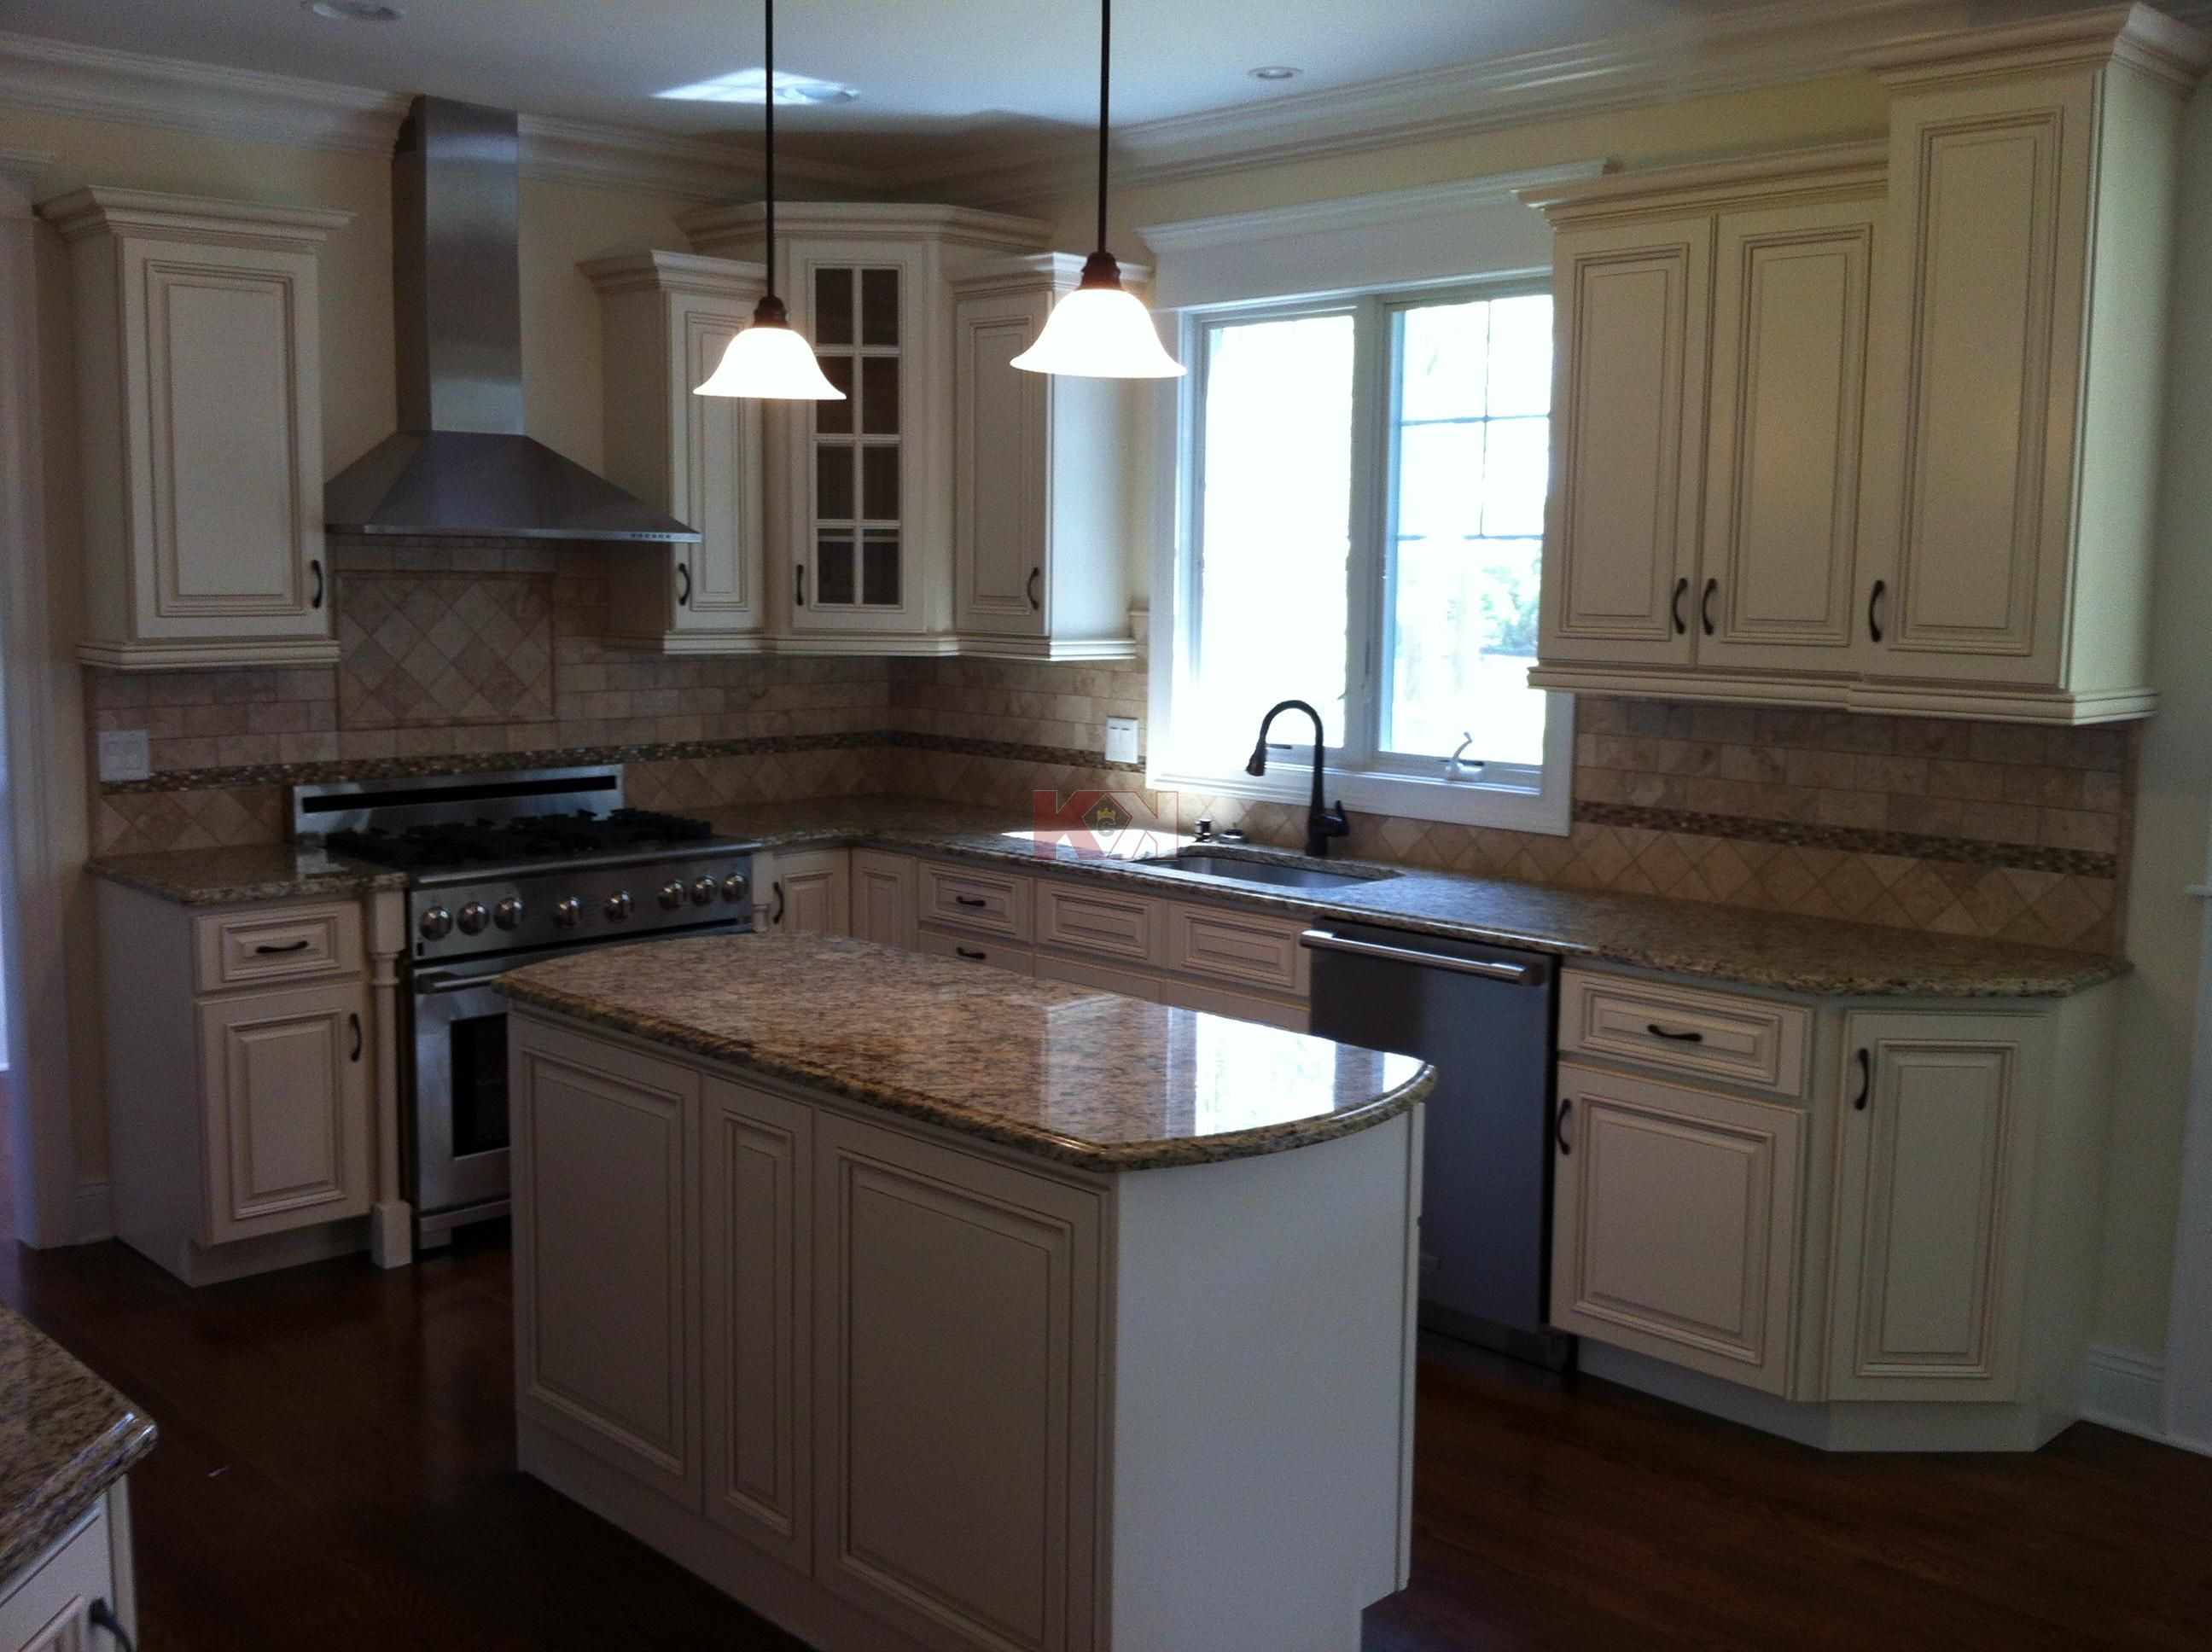 Pearl Cabinets by Kitchen Cabinet Kings | Kitchen cabinet ...